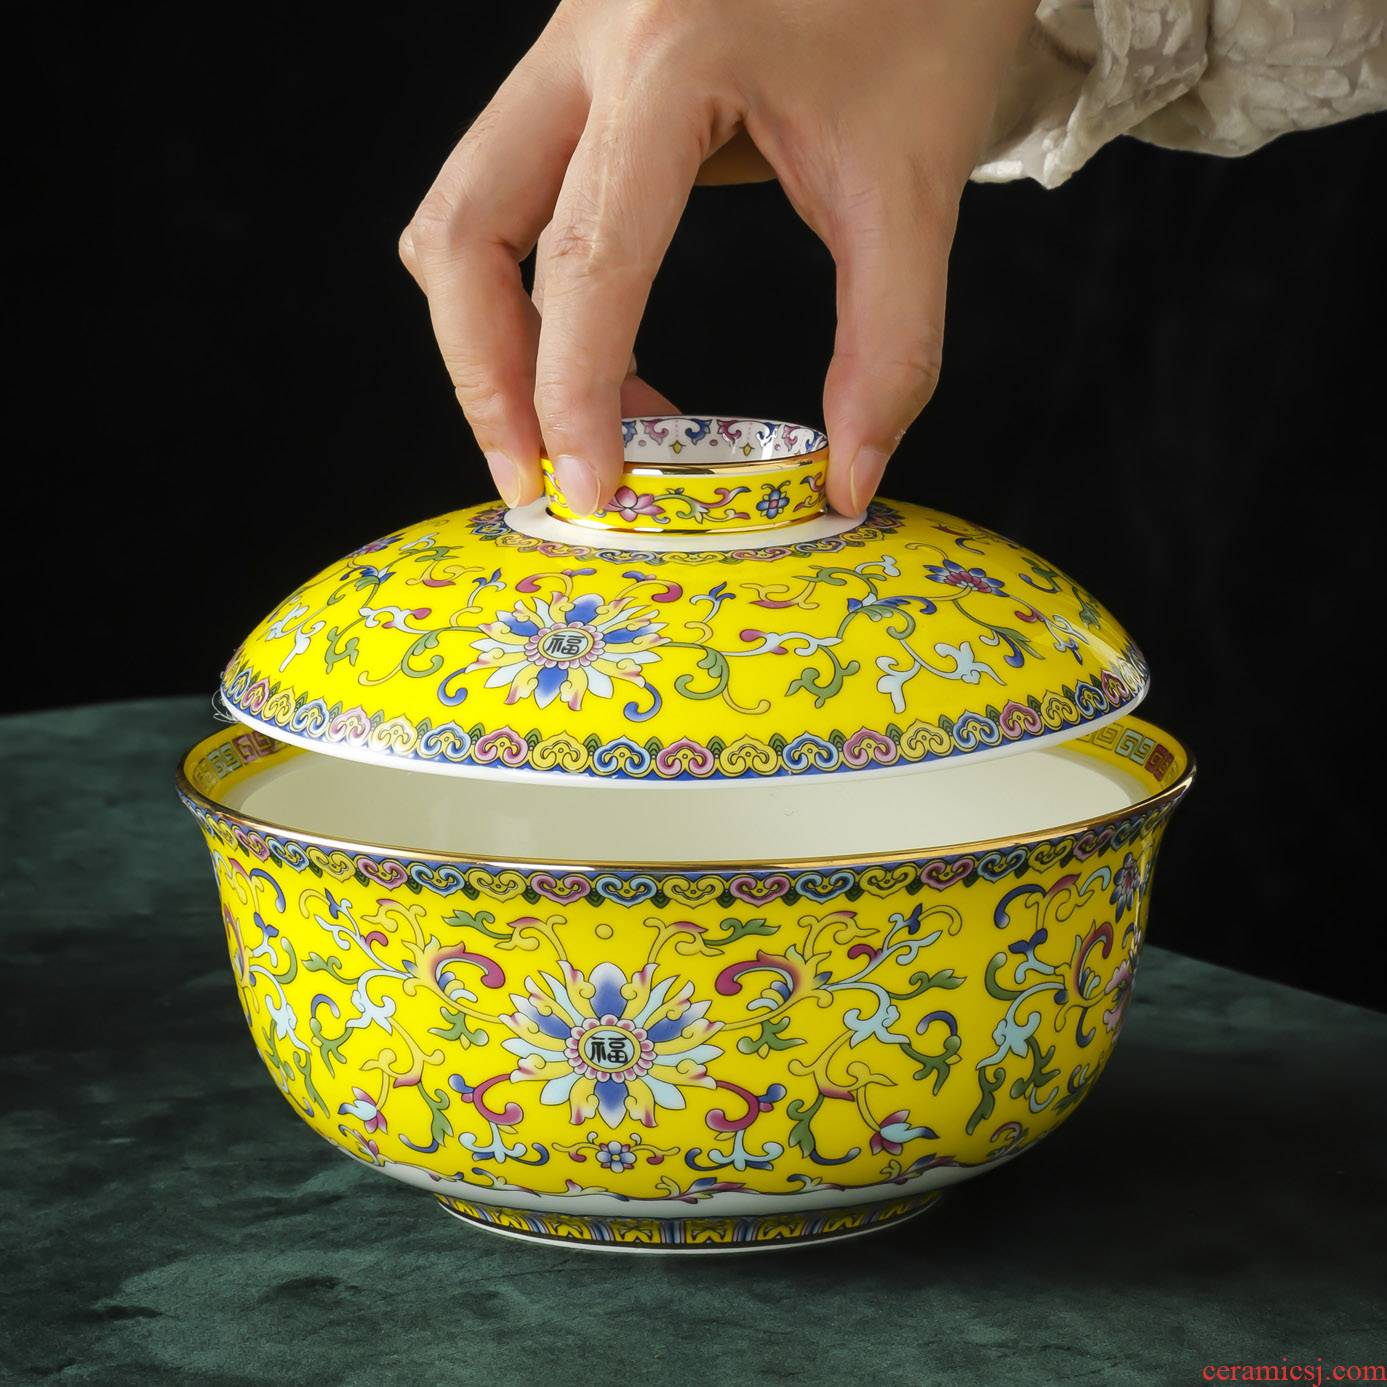 Jingdezhen porcelain enamel made pottery with cover mercifully rainbow such use Chinese style household porringer student canteen dormitory tableware bowls